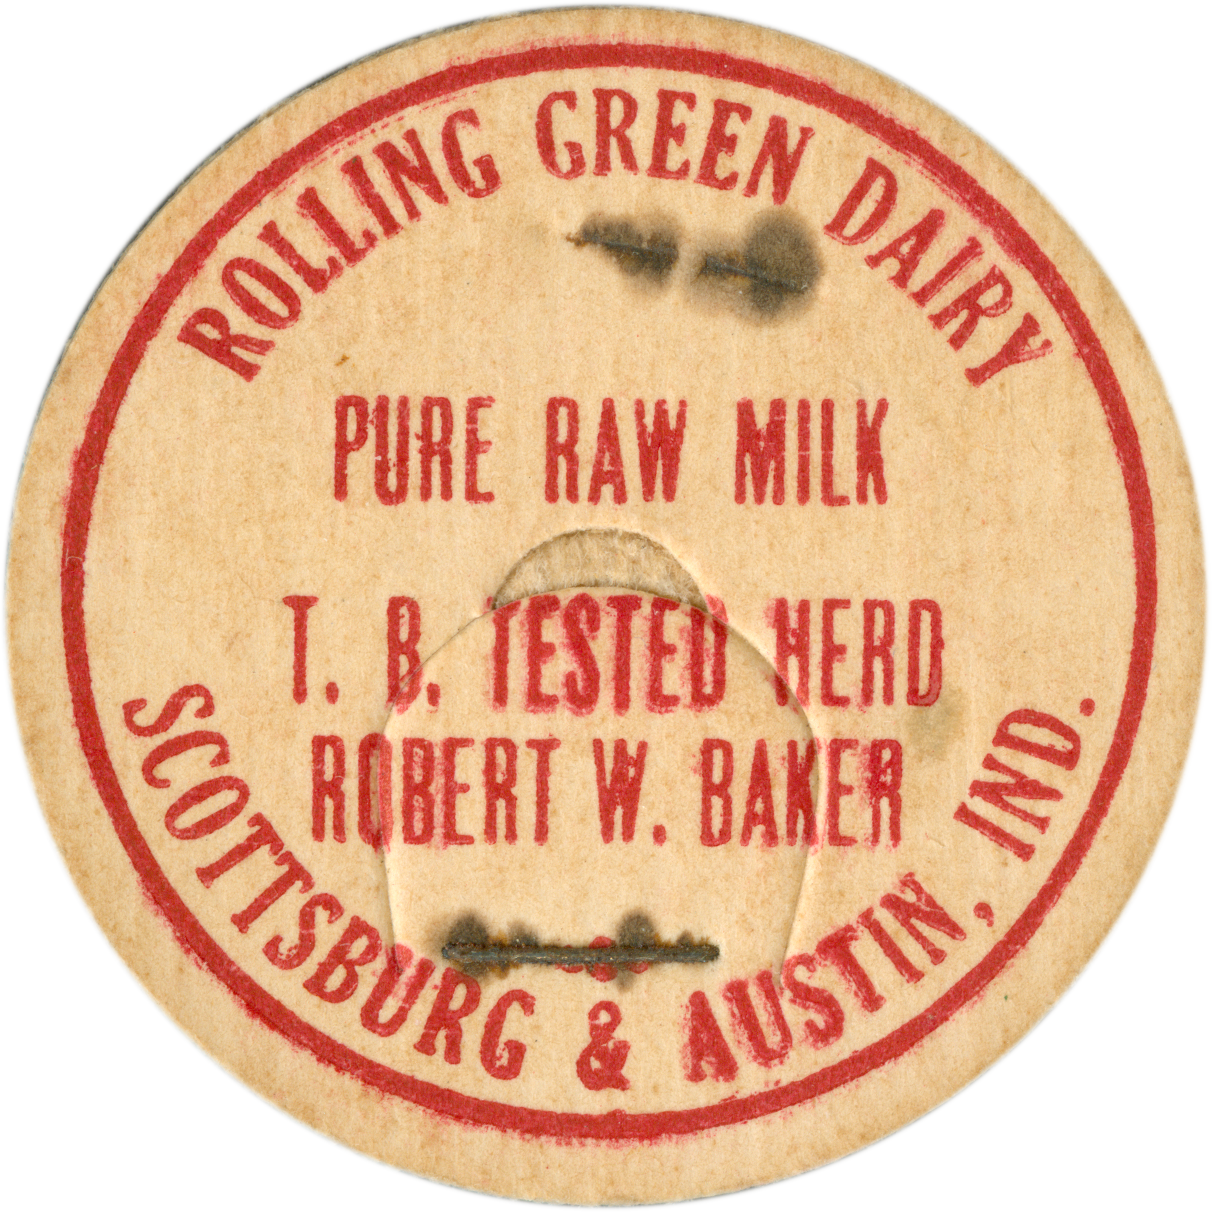 VernacularCircles__0001s_0003_Rolling-Green-Dairy---Pure-Raw-Milk.png